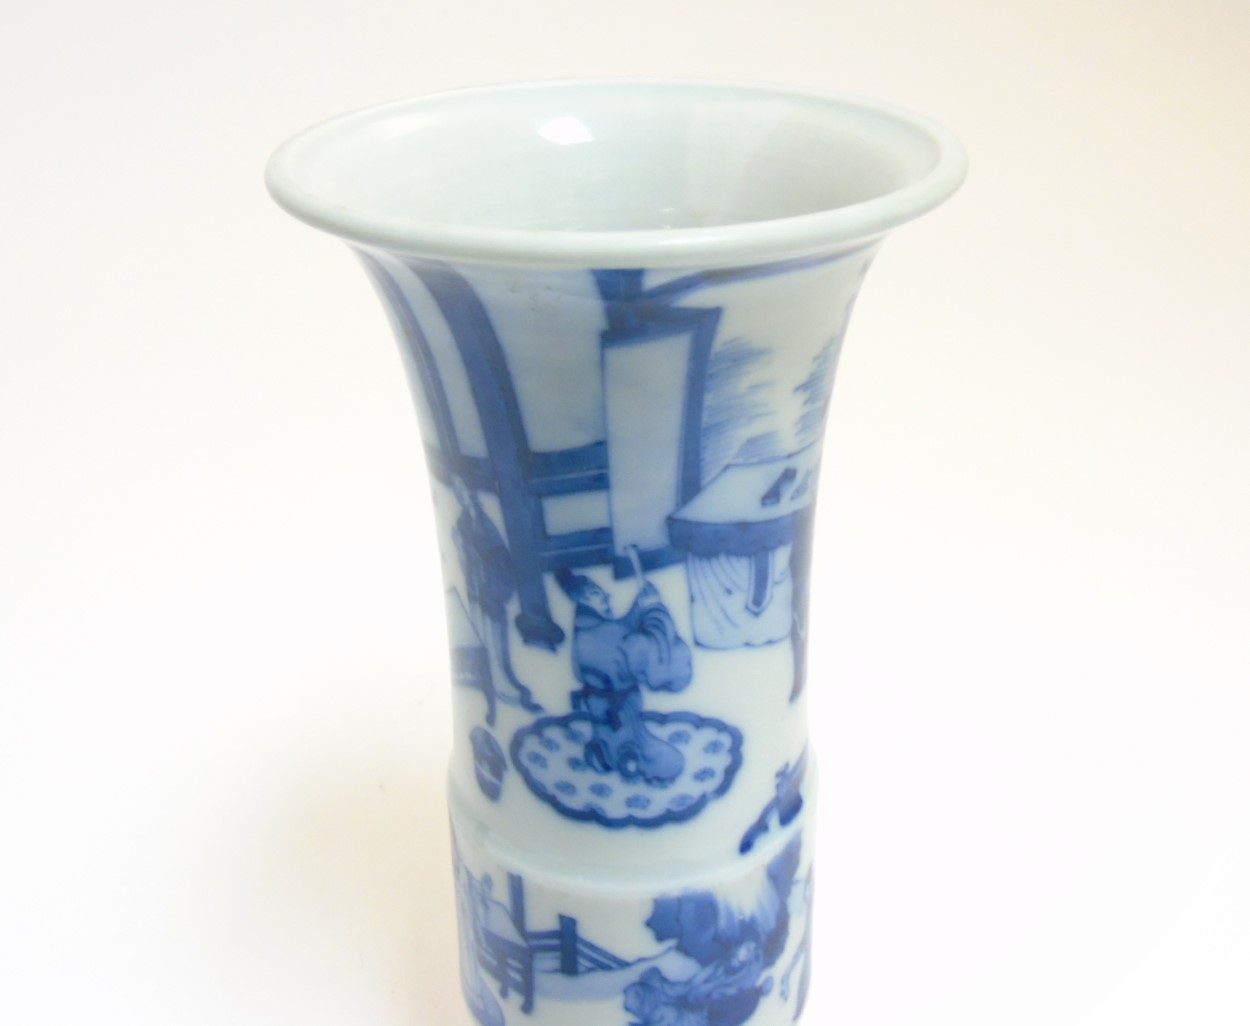 Lot 10 - A Chinese blue and white Gu vase with underglaze blue decoration depicting imperials in a pagoda